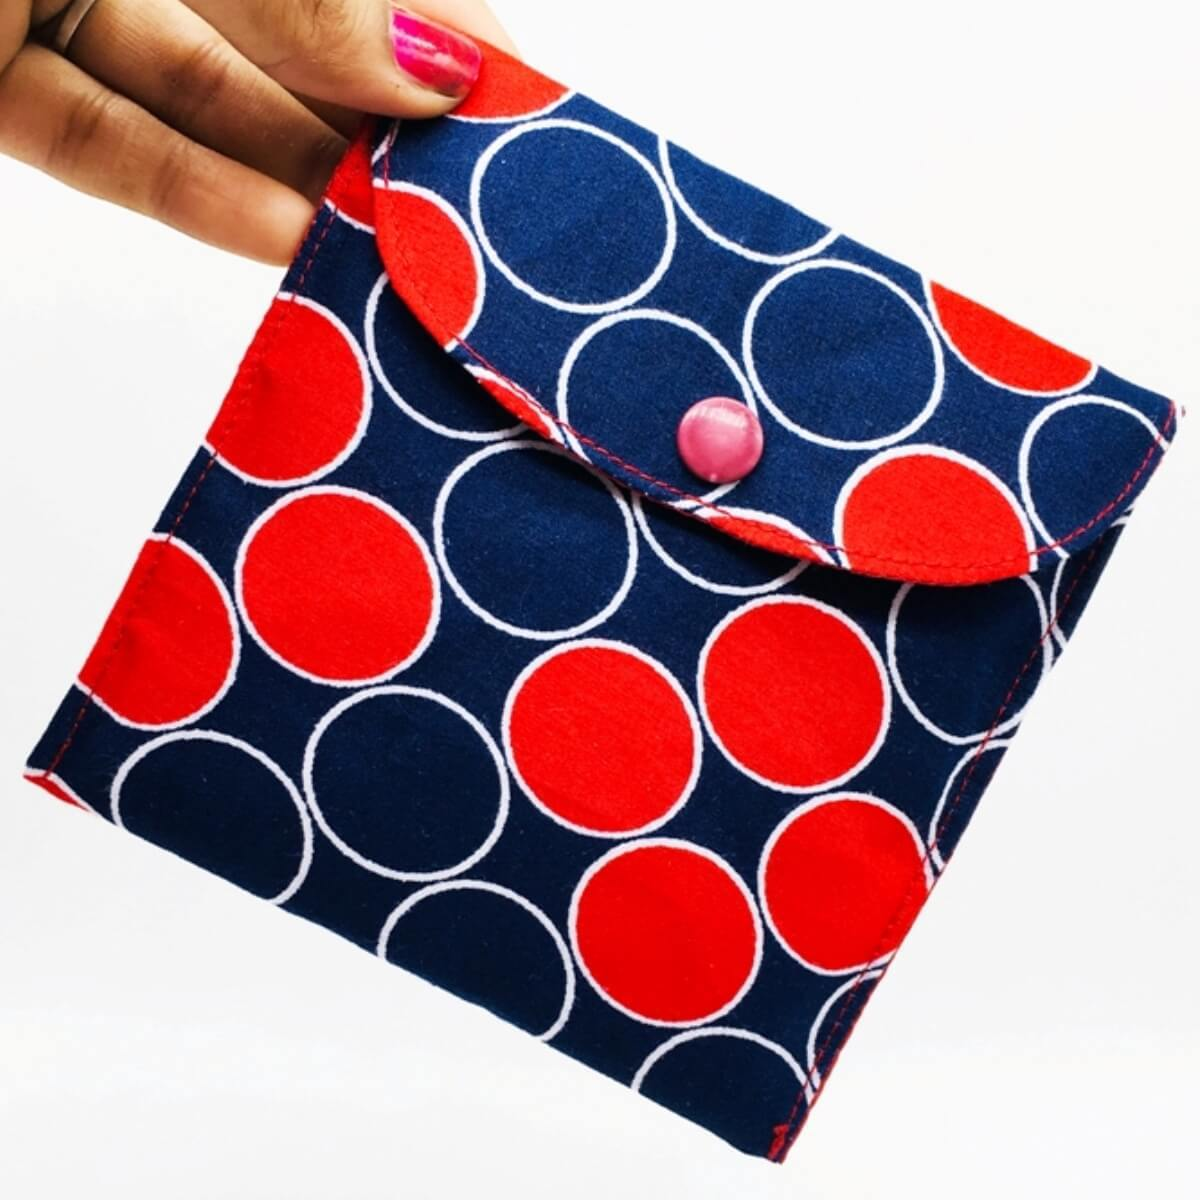 Polka Sanitary Pad Pouch One Pocket Red Lining Button Qtrove